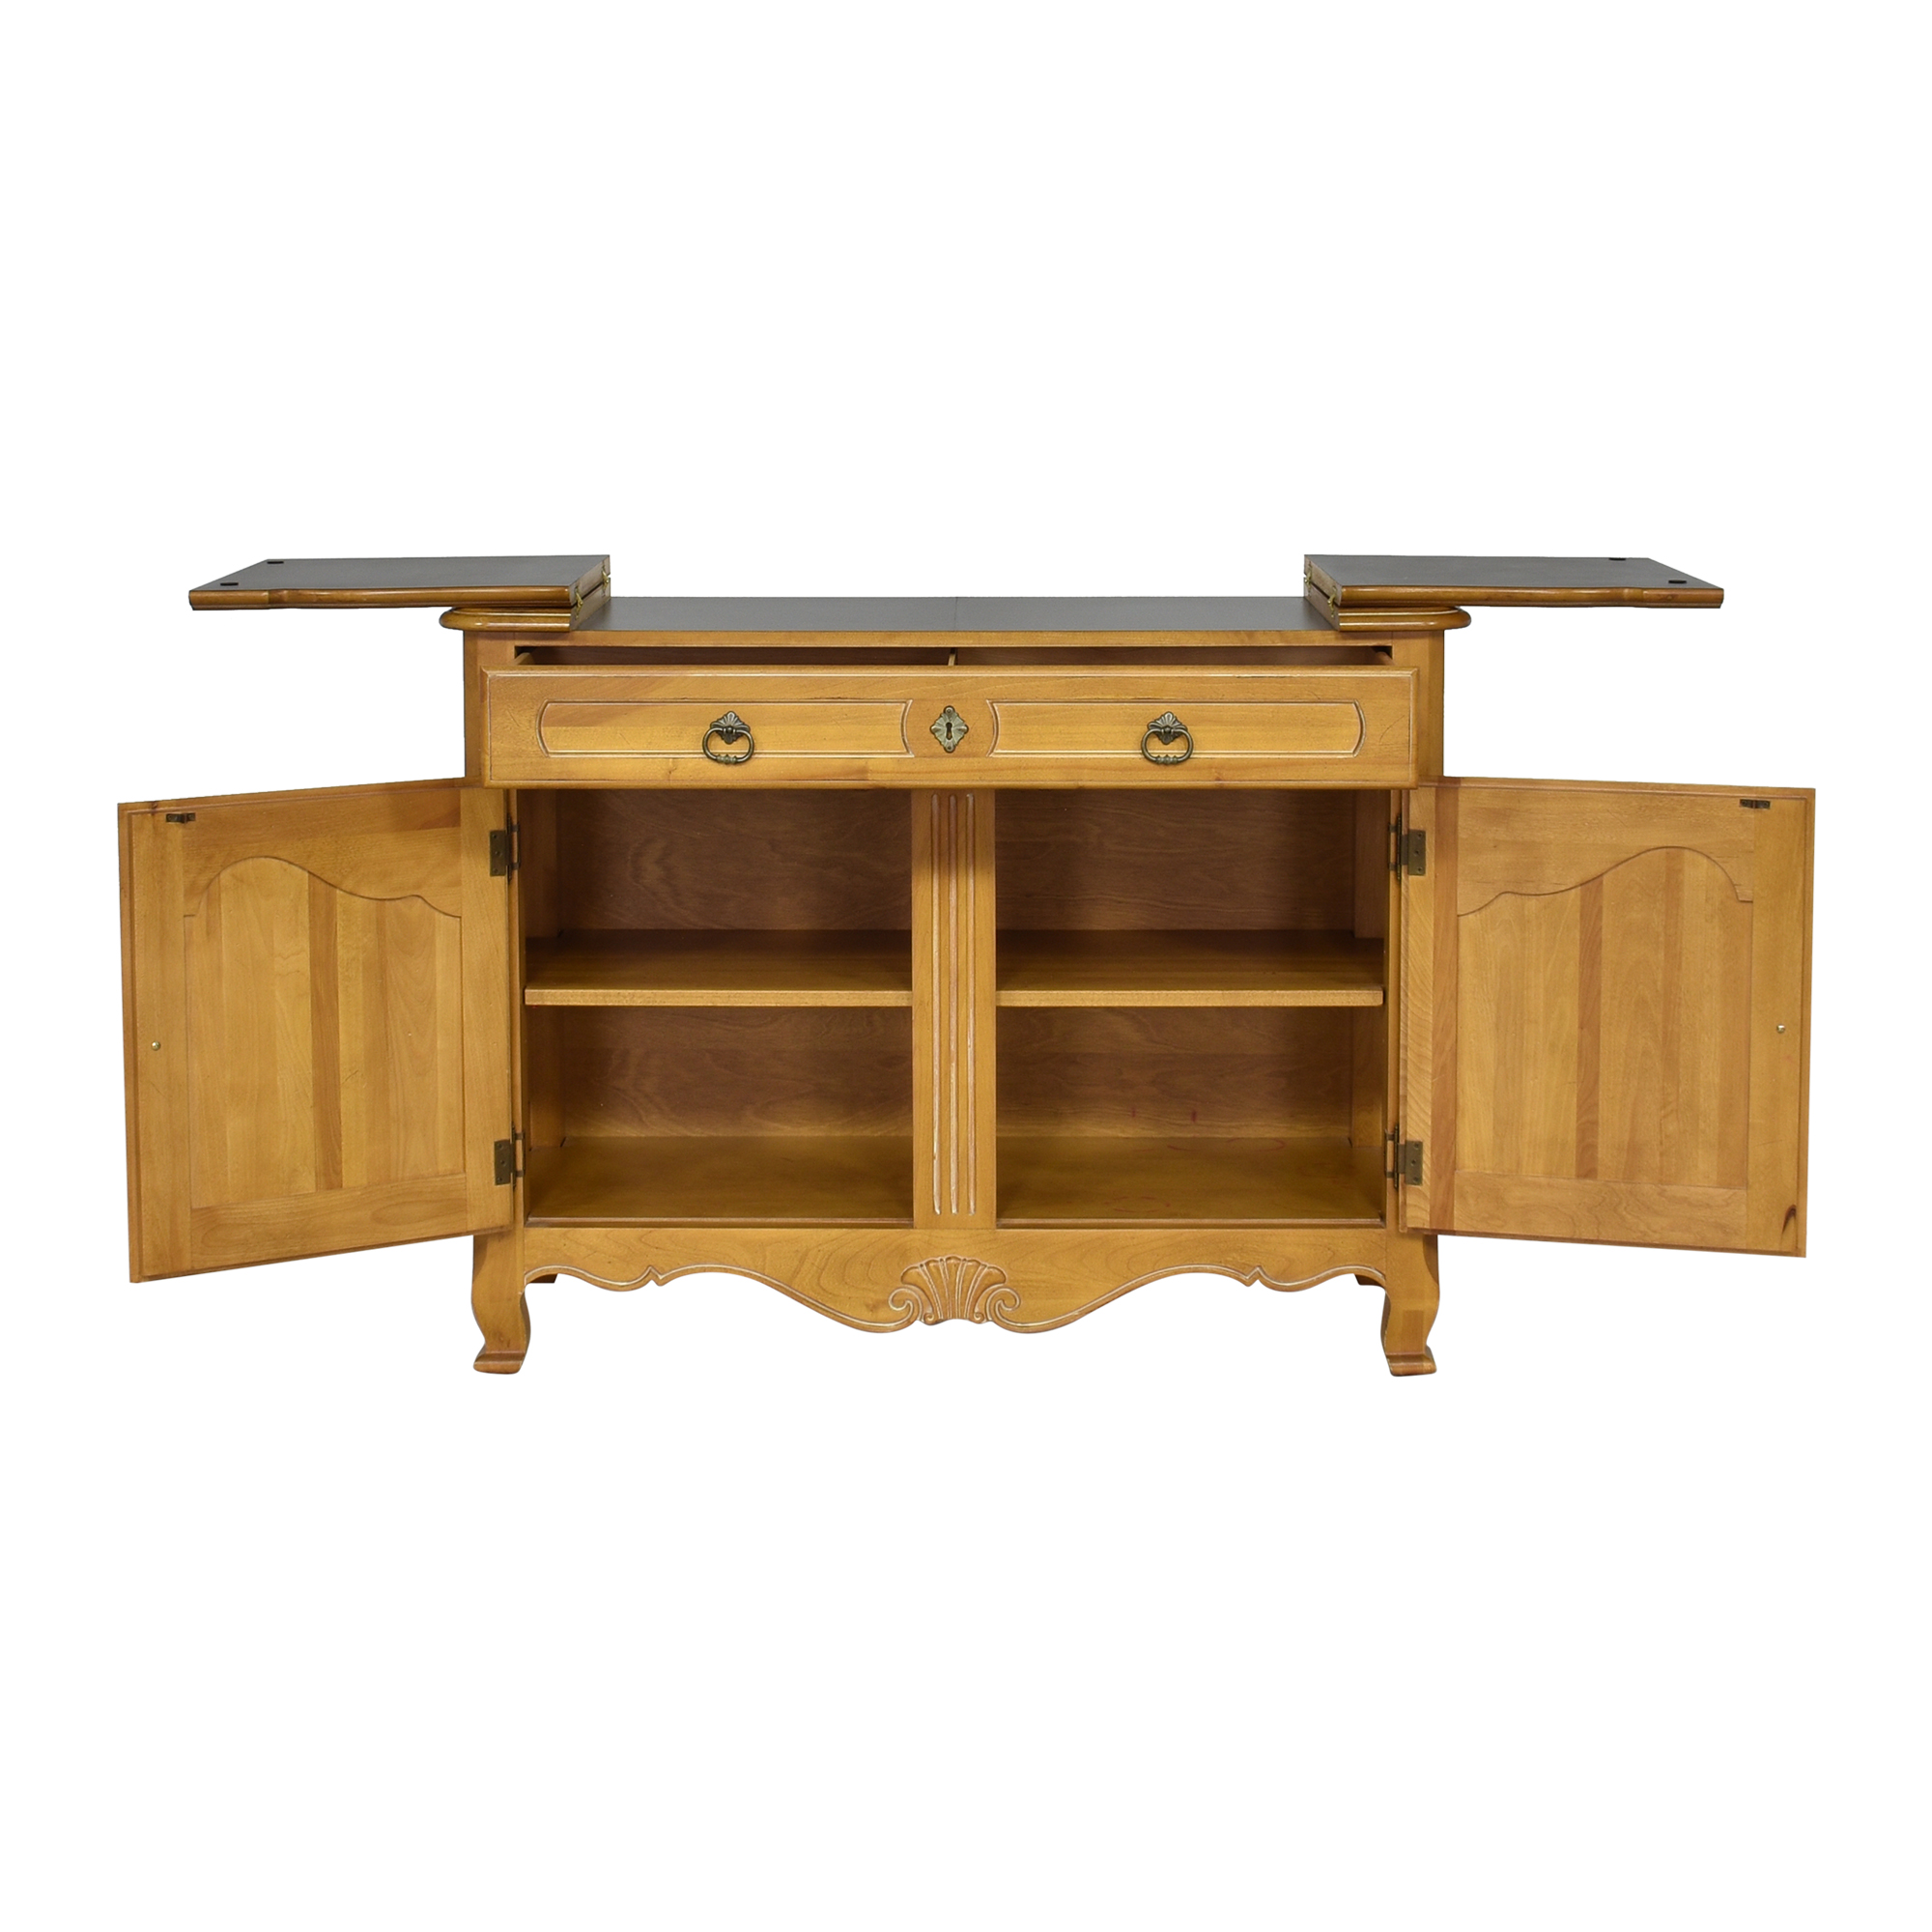 Ethan Allen Ethan Allen Legacy Collection Sideboard nyc